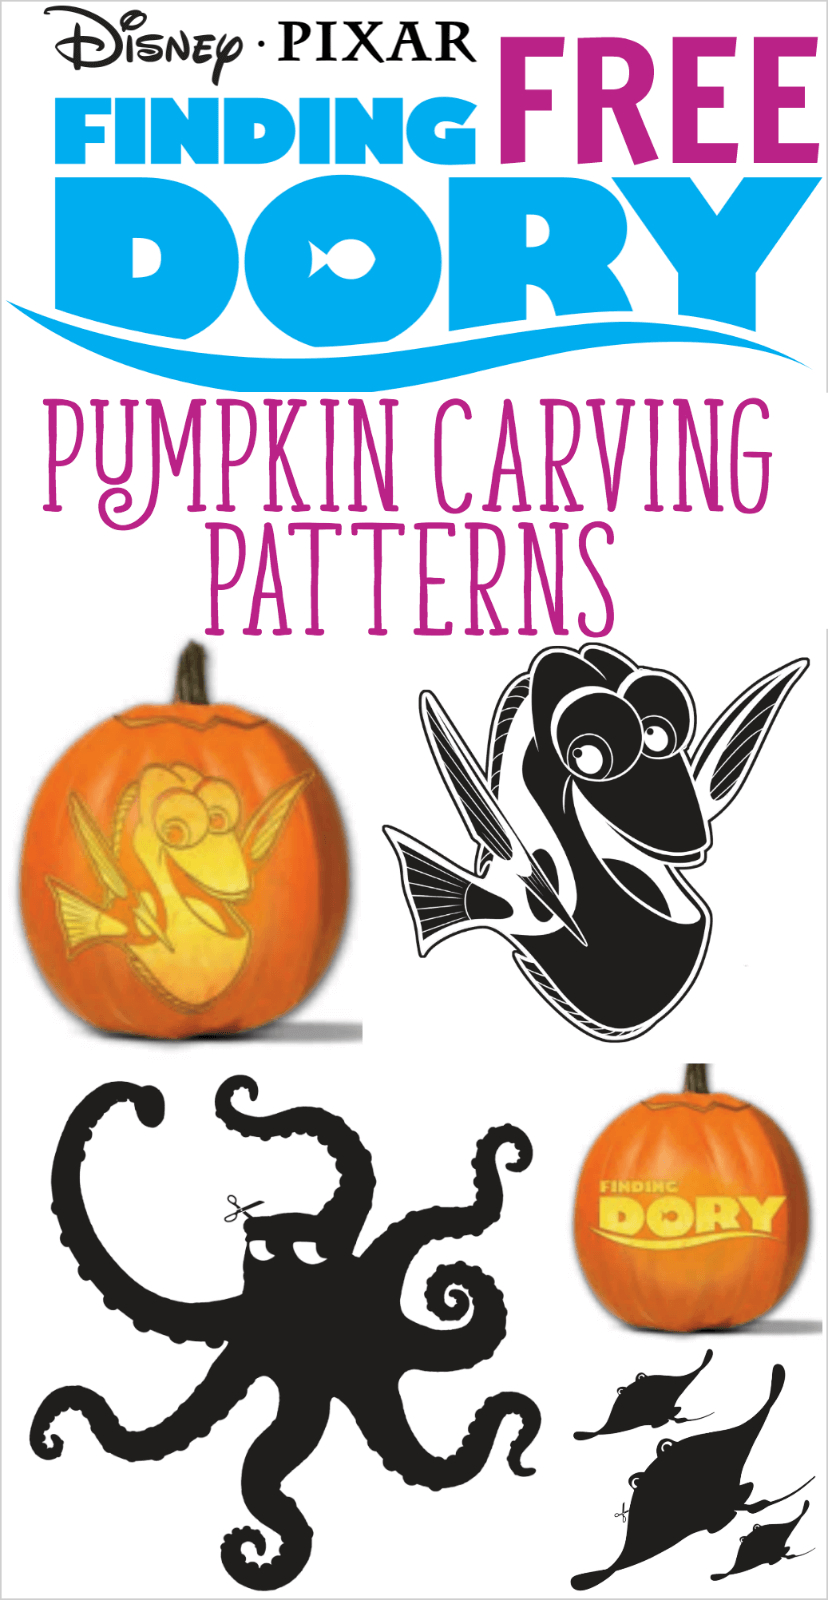 Free Finding Dory Pumpkin Carving Patterns To Print!   All Things - Free Pumpkin Carving Patterns Disney Printable